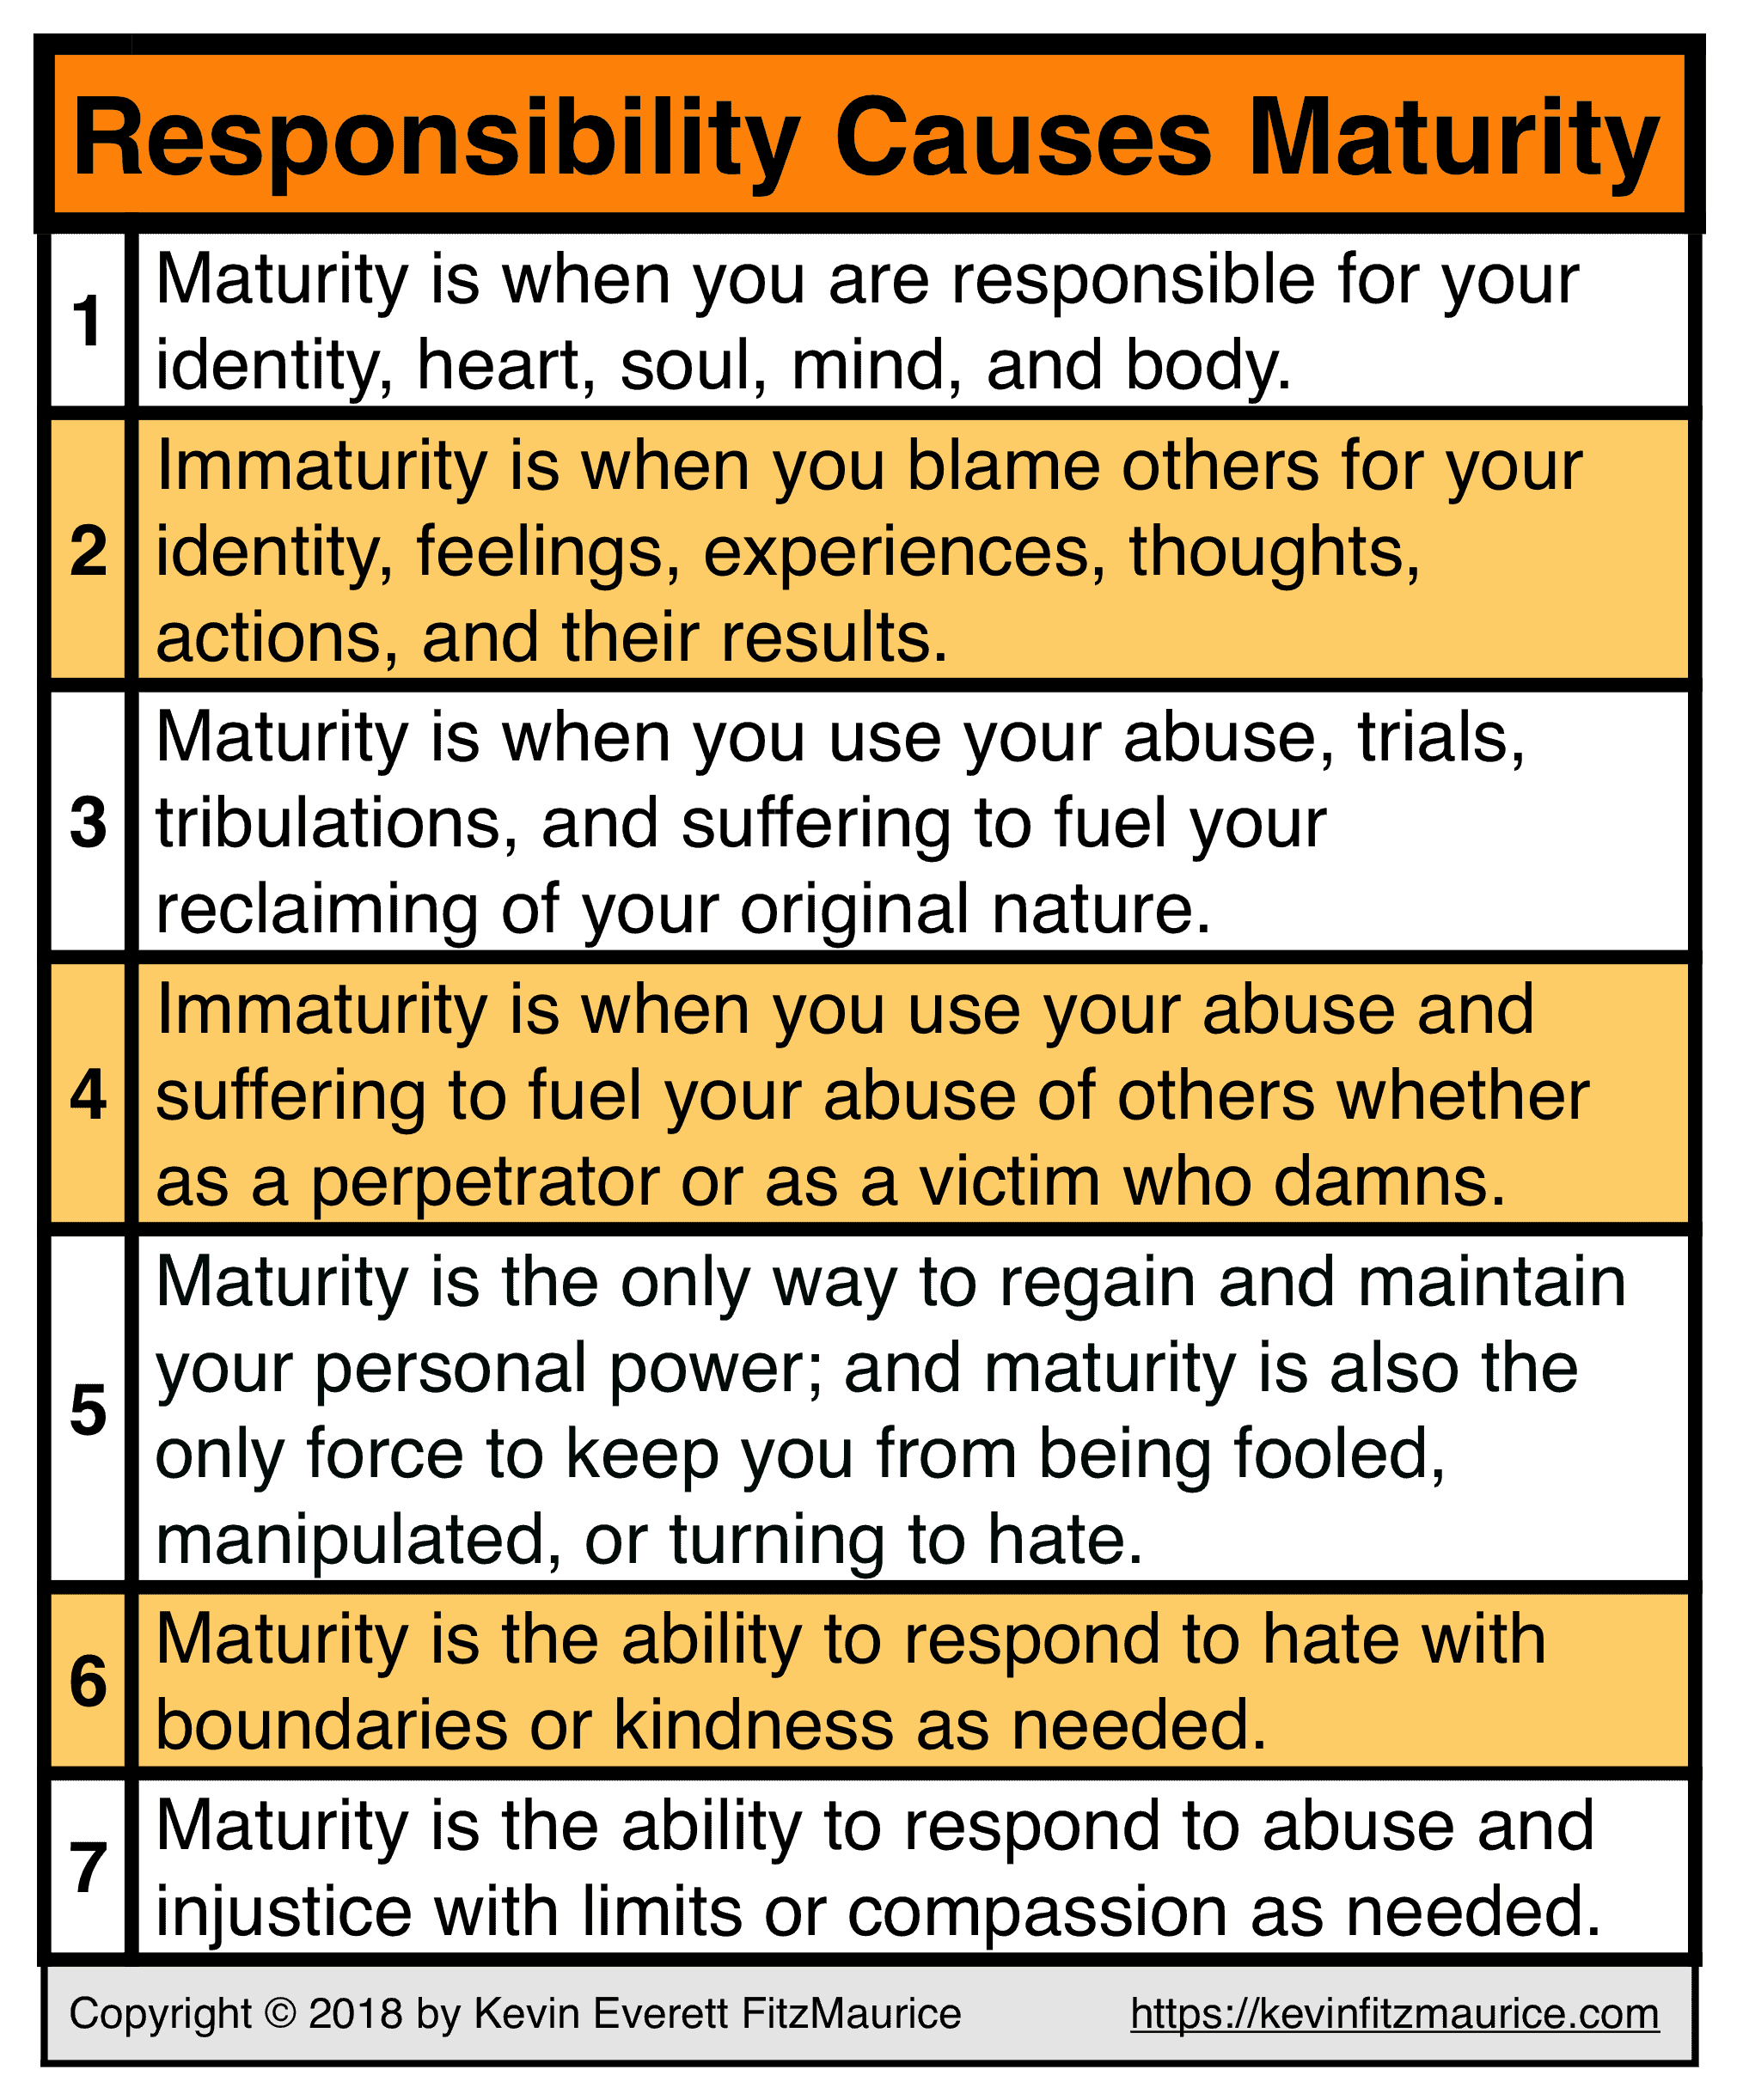 Responsibility Is the cause of Maturity